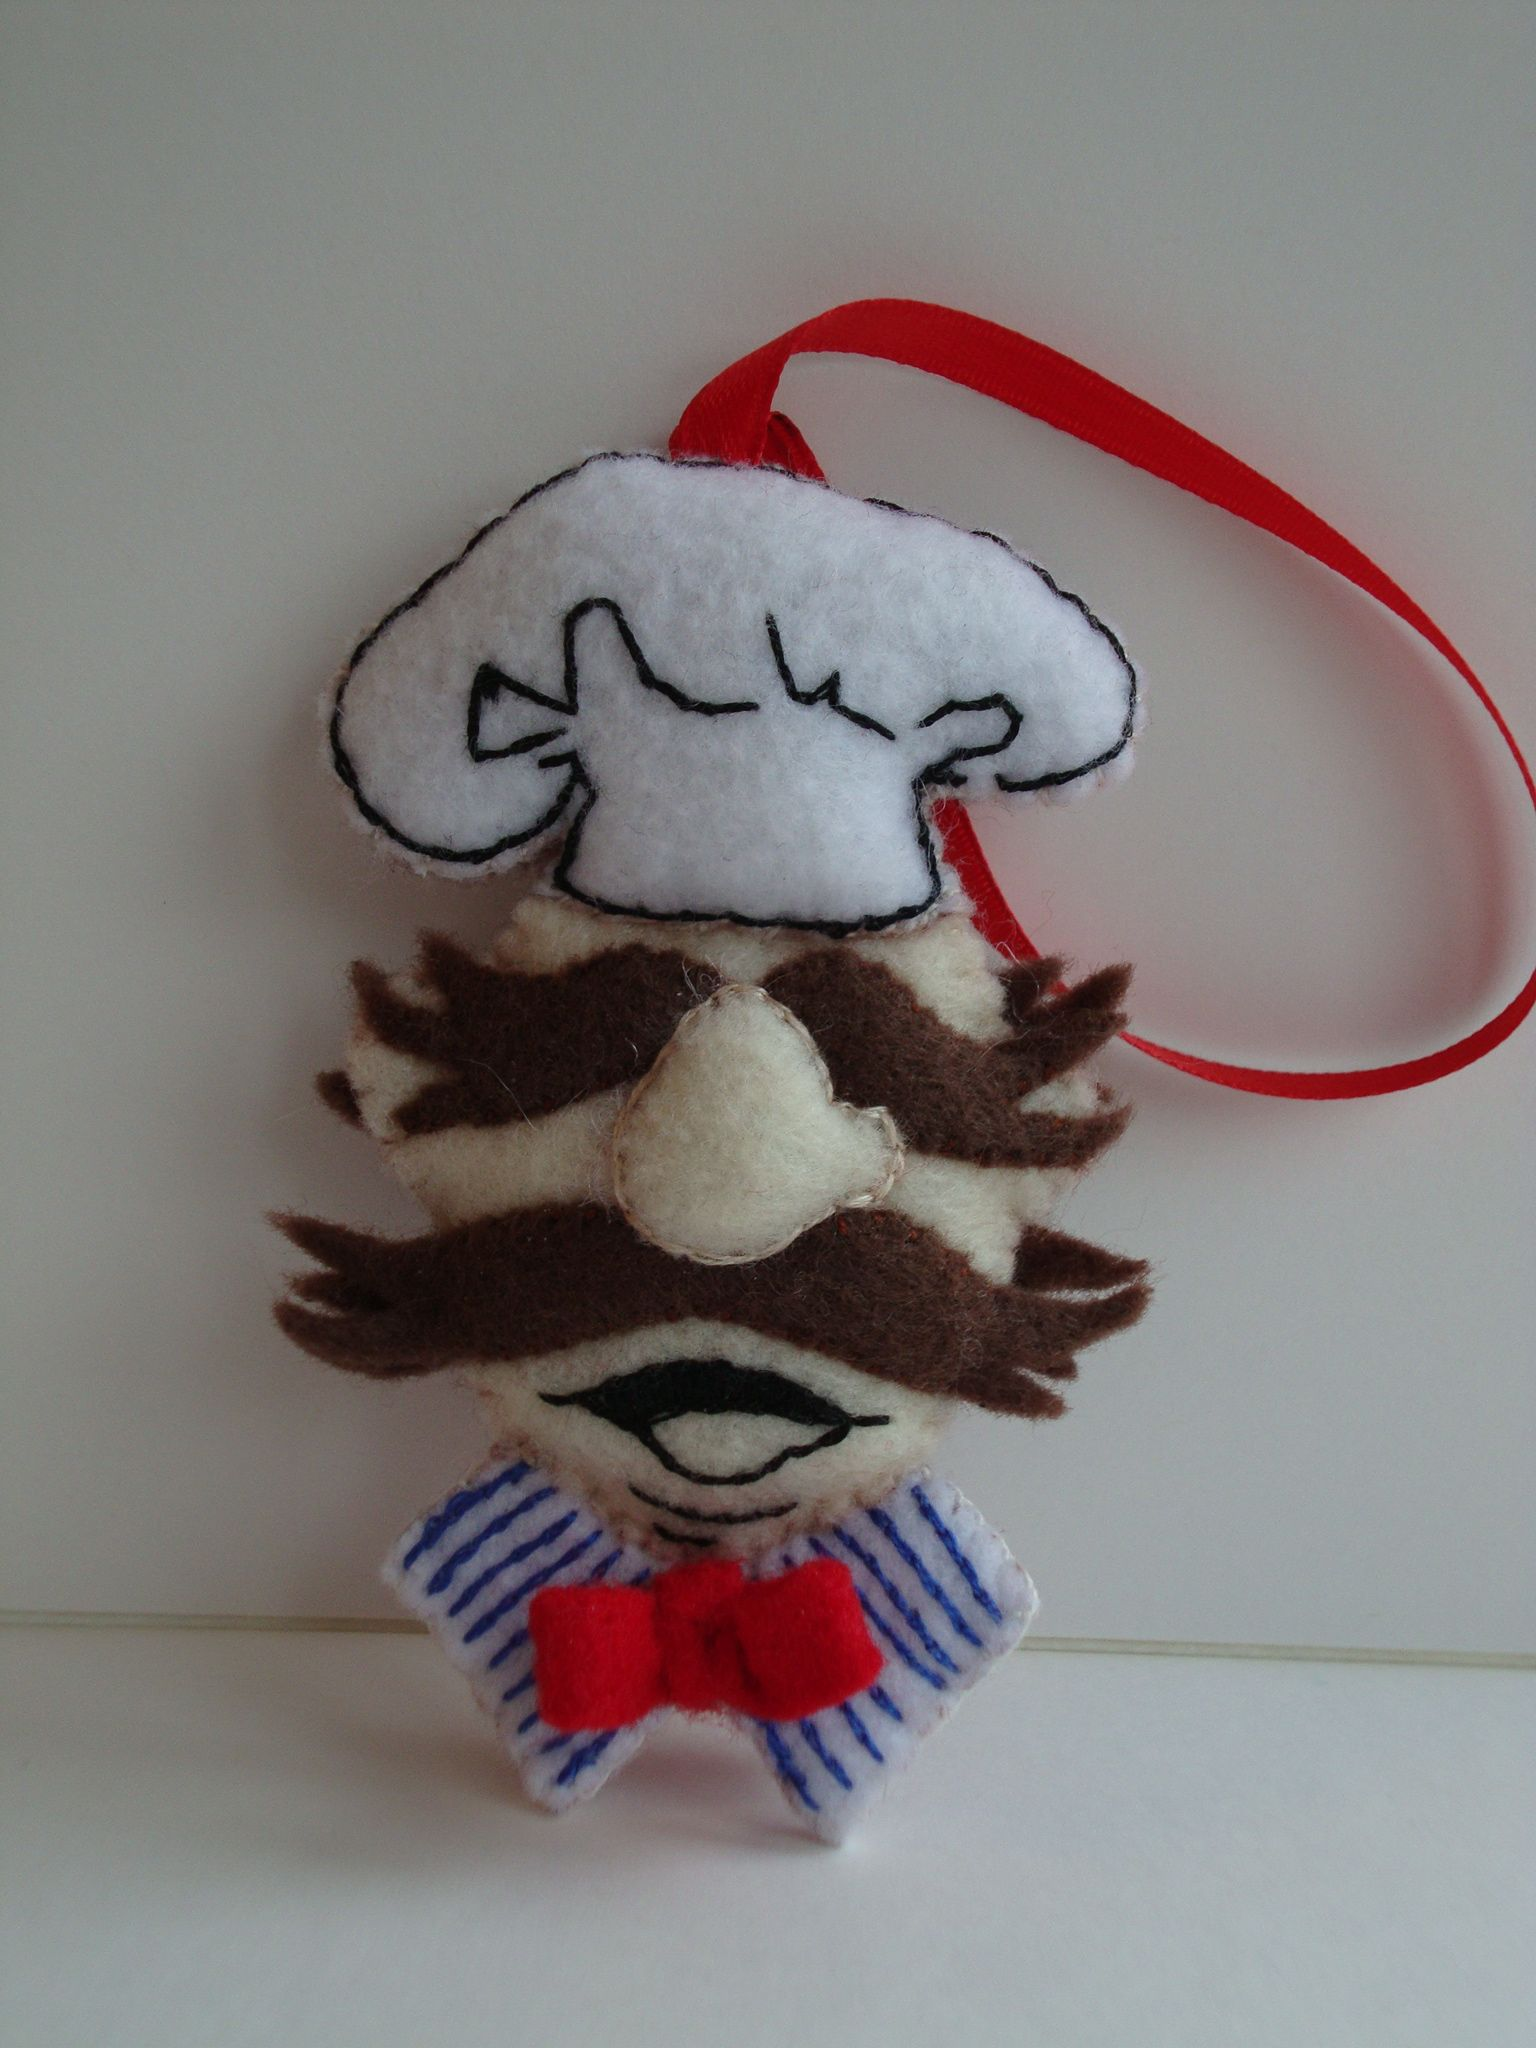 the muppets swedish chef hand made felt ornament lexifeltique